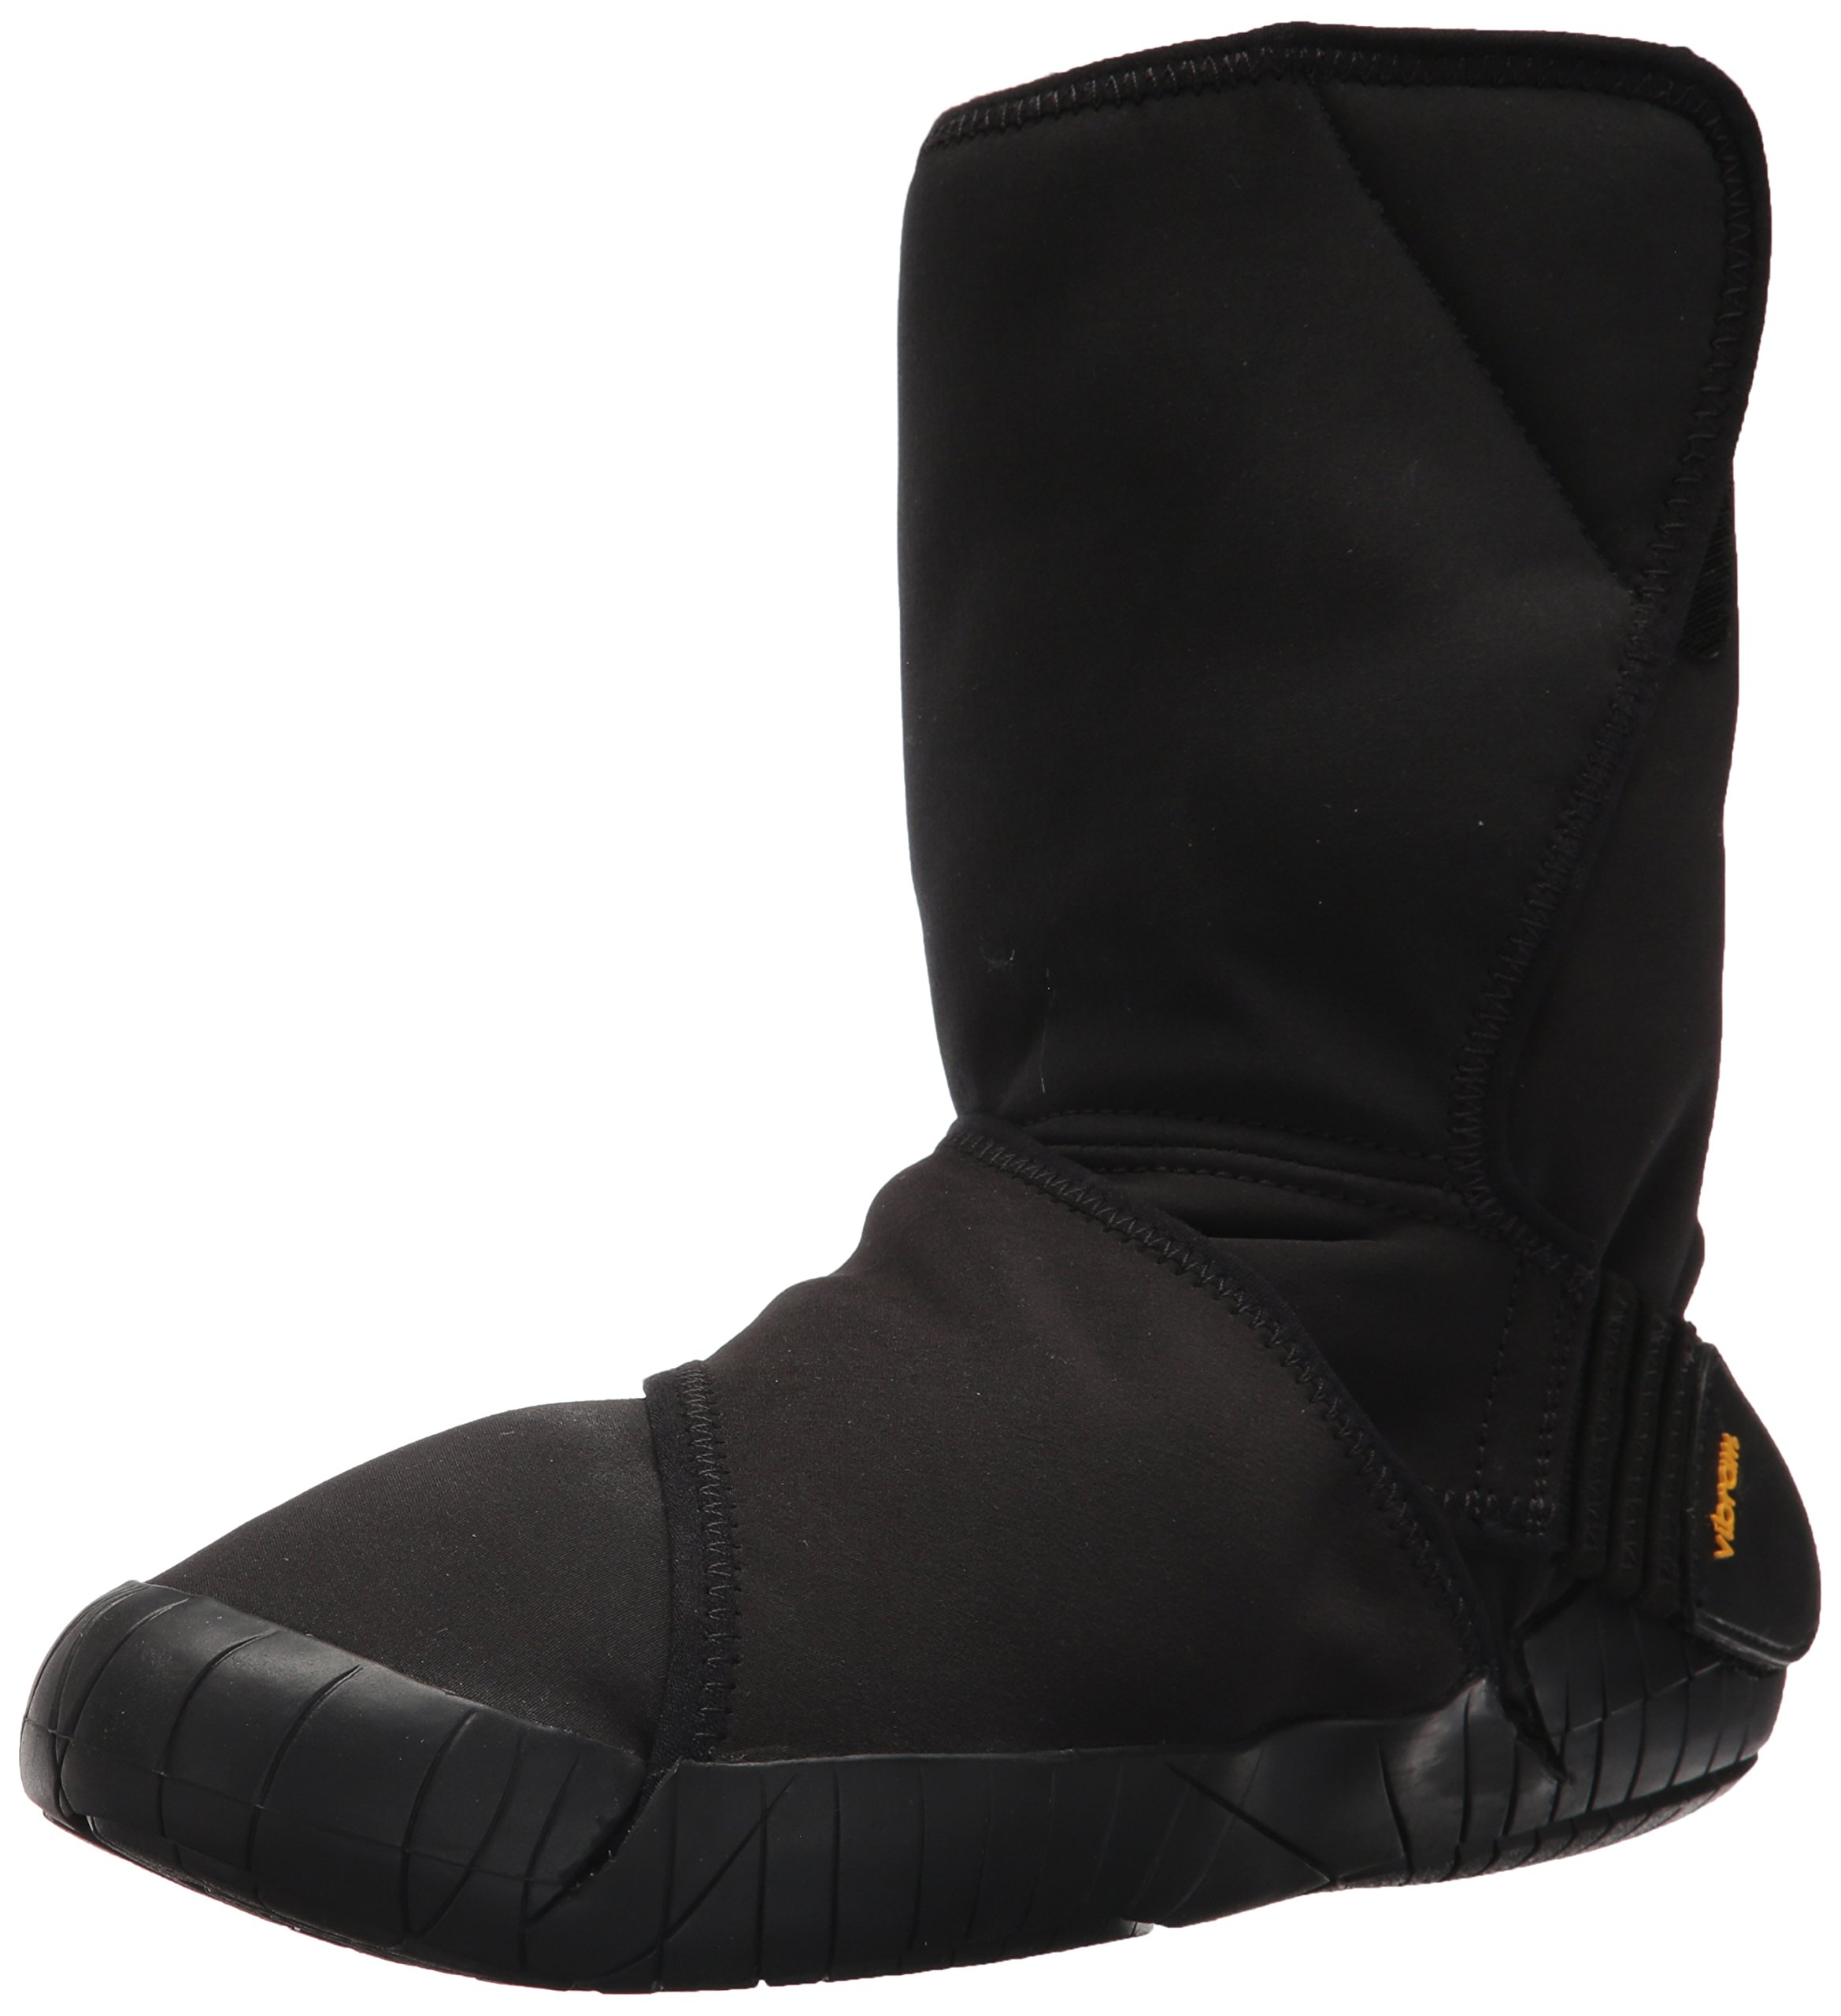 Vibram Furoshiki Mid Boot New Yorker Sneaker, Black, EU:42-43/UK Man:8-9/UK Woman:9-10.5/cm:26.5-27.5/US Man:9-10/US Woman:10-11.5